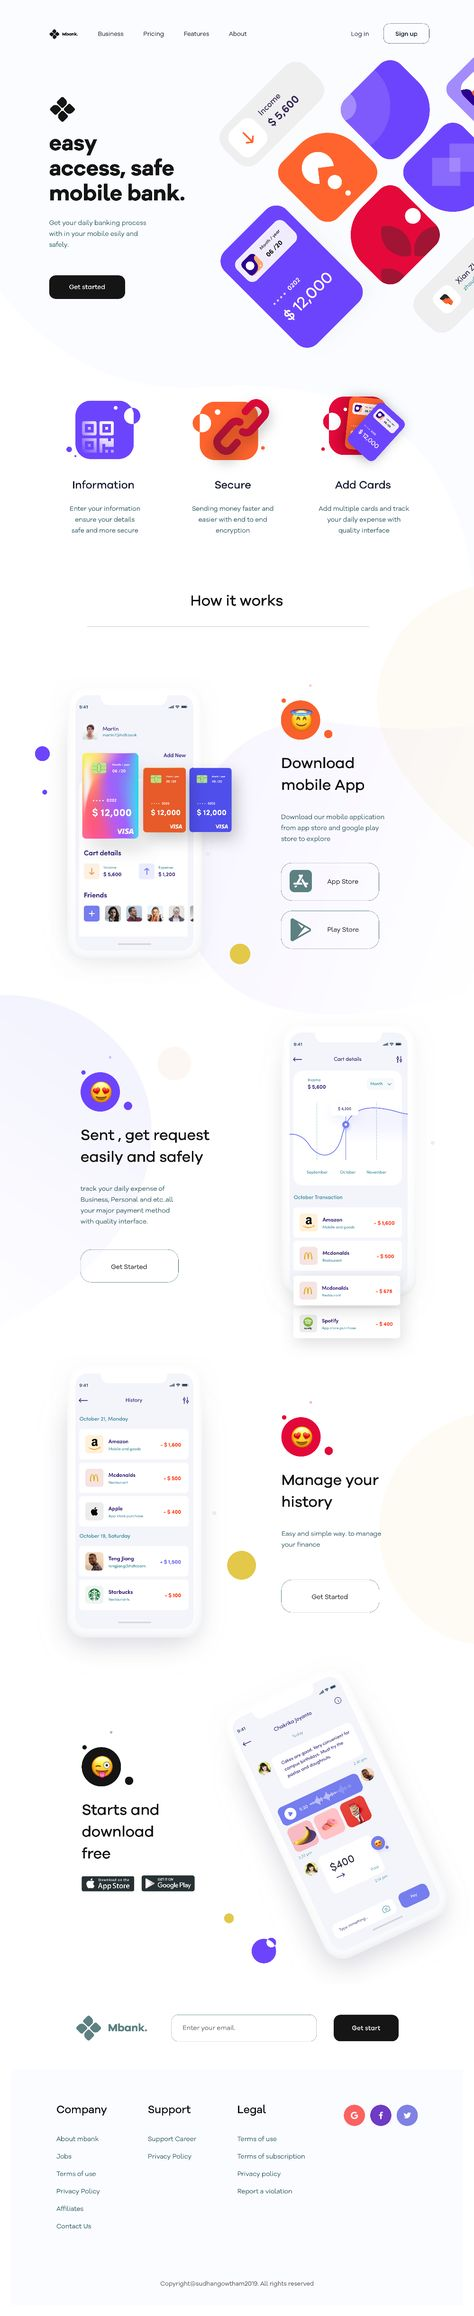 bank_2.png by Sudhan Gowtham